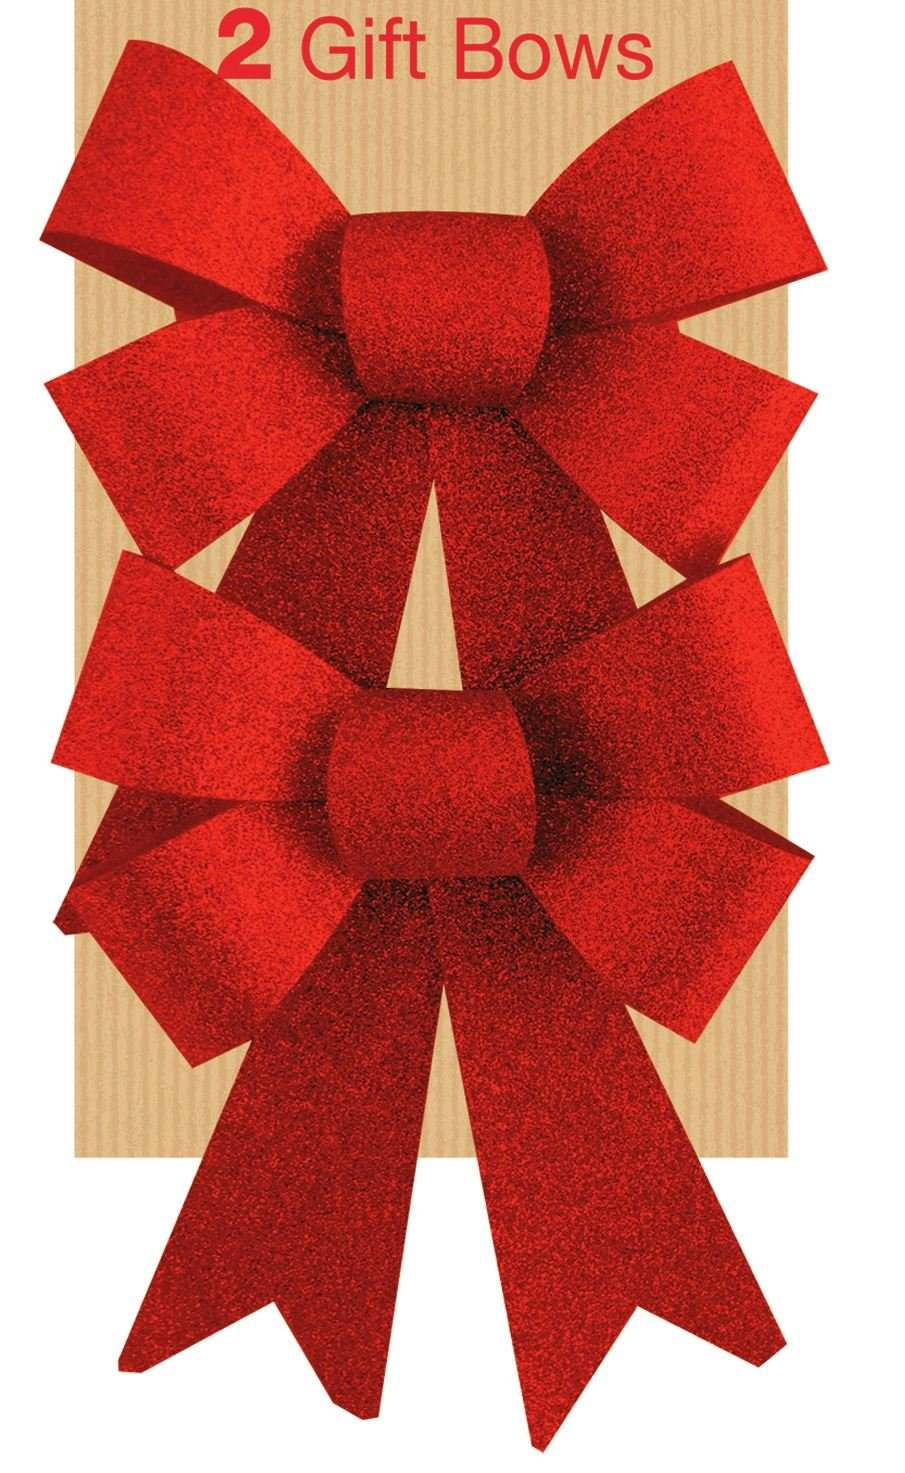 2 Glitter Bows Red Christmas Decoration Present Family Celebration Christmas Tree Festive Birthday Wedding Wrapping Hampers Concept4u